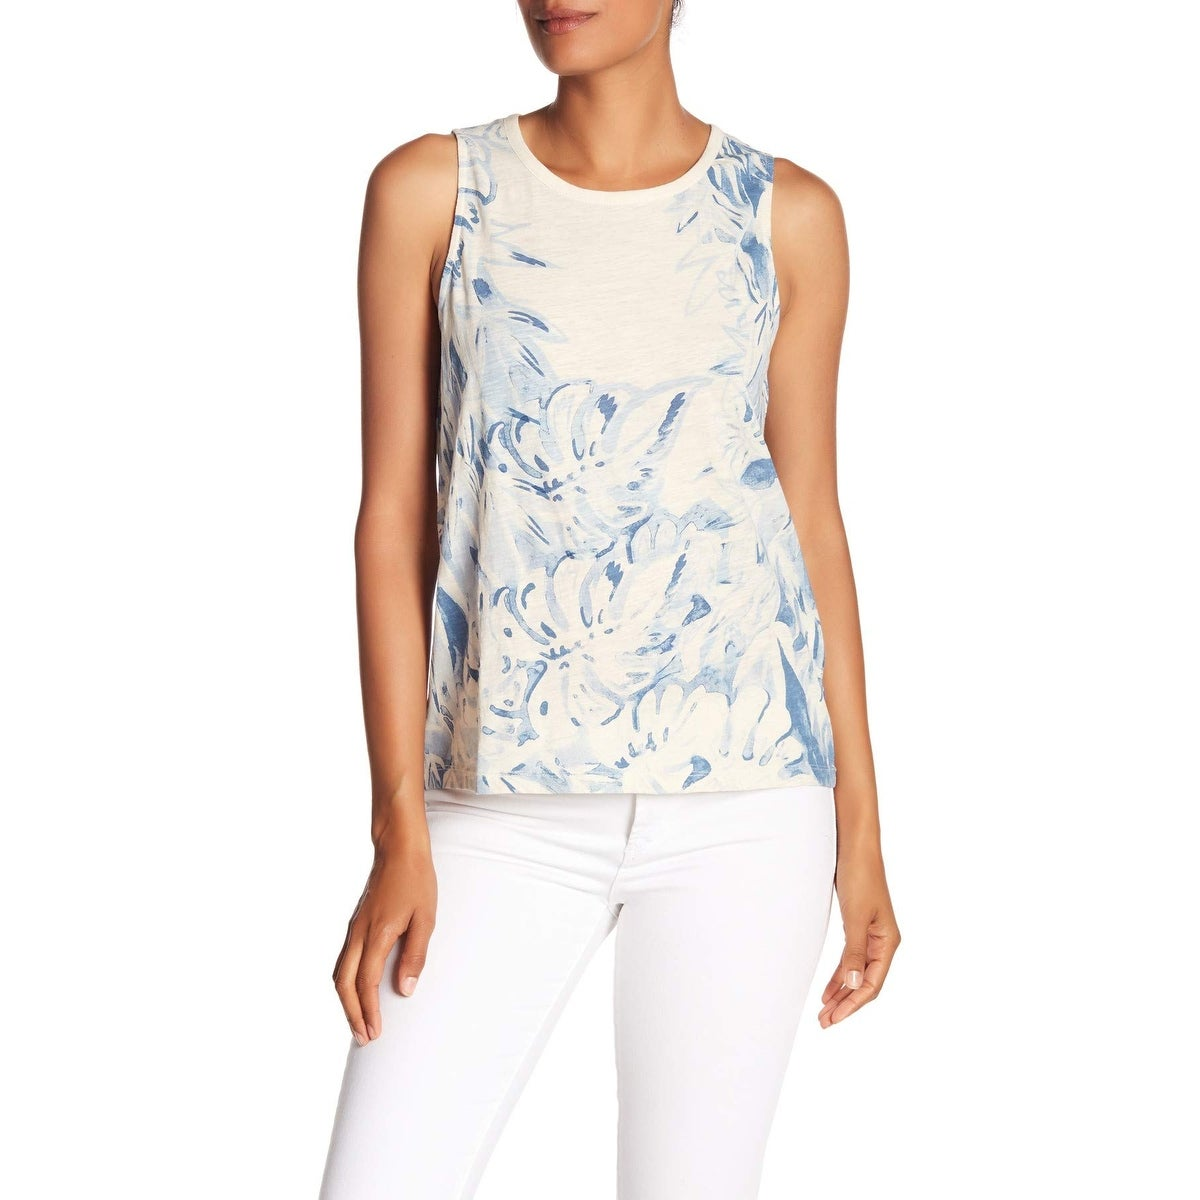 LUCKY BRAND Womens White Floral Print Cutout Tank Top XS